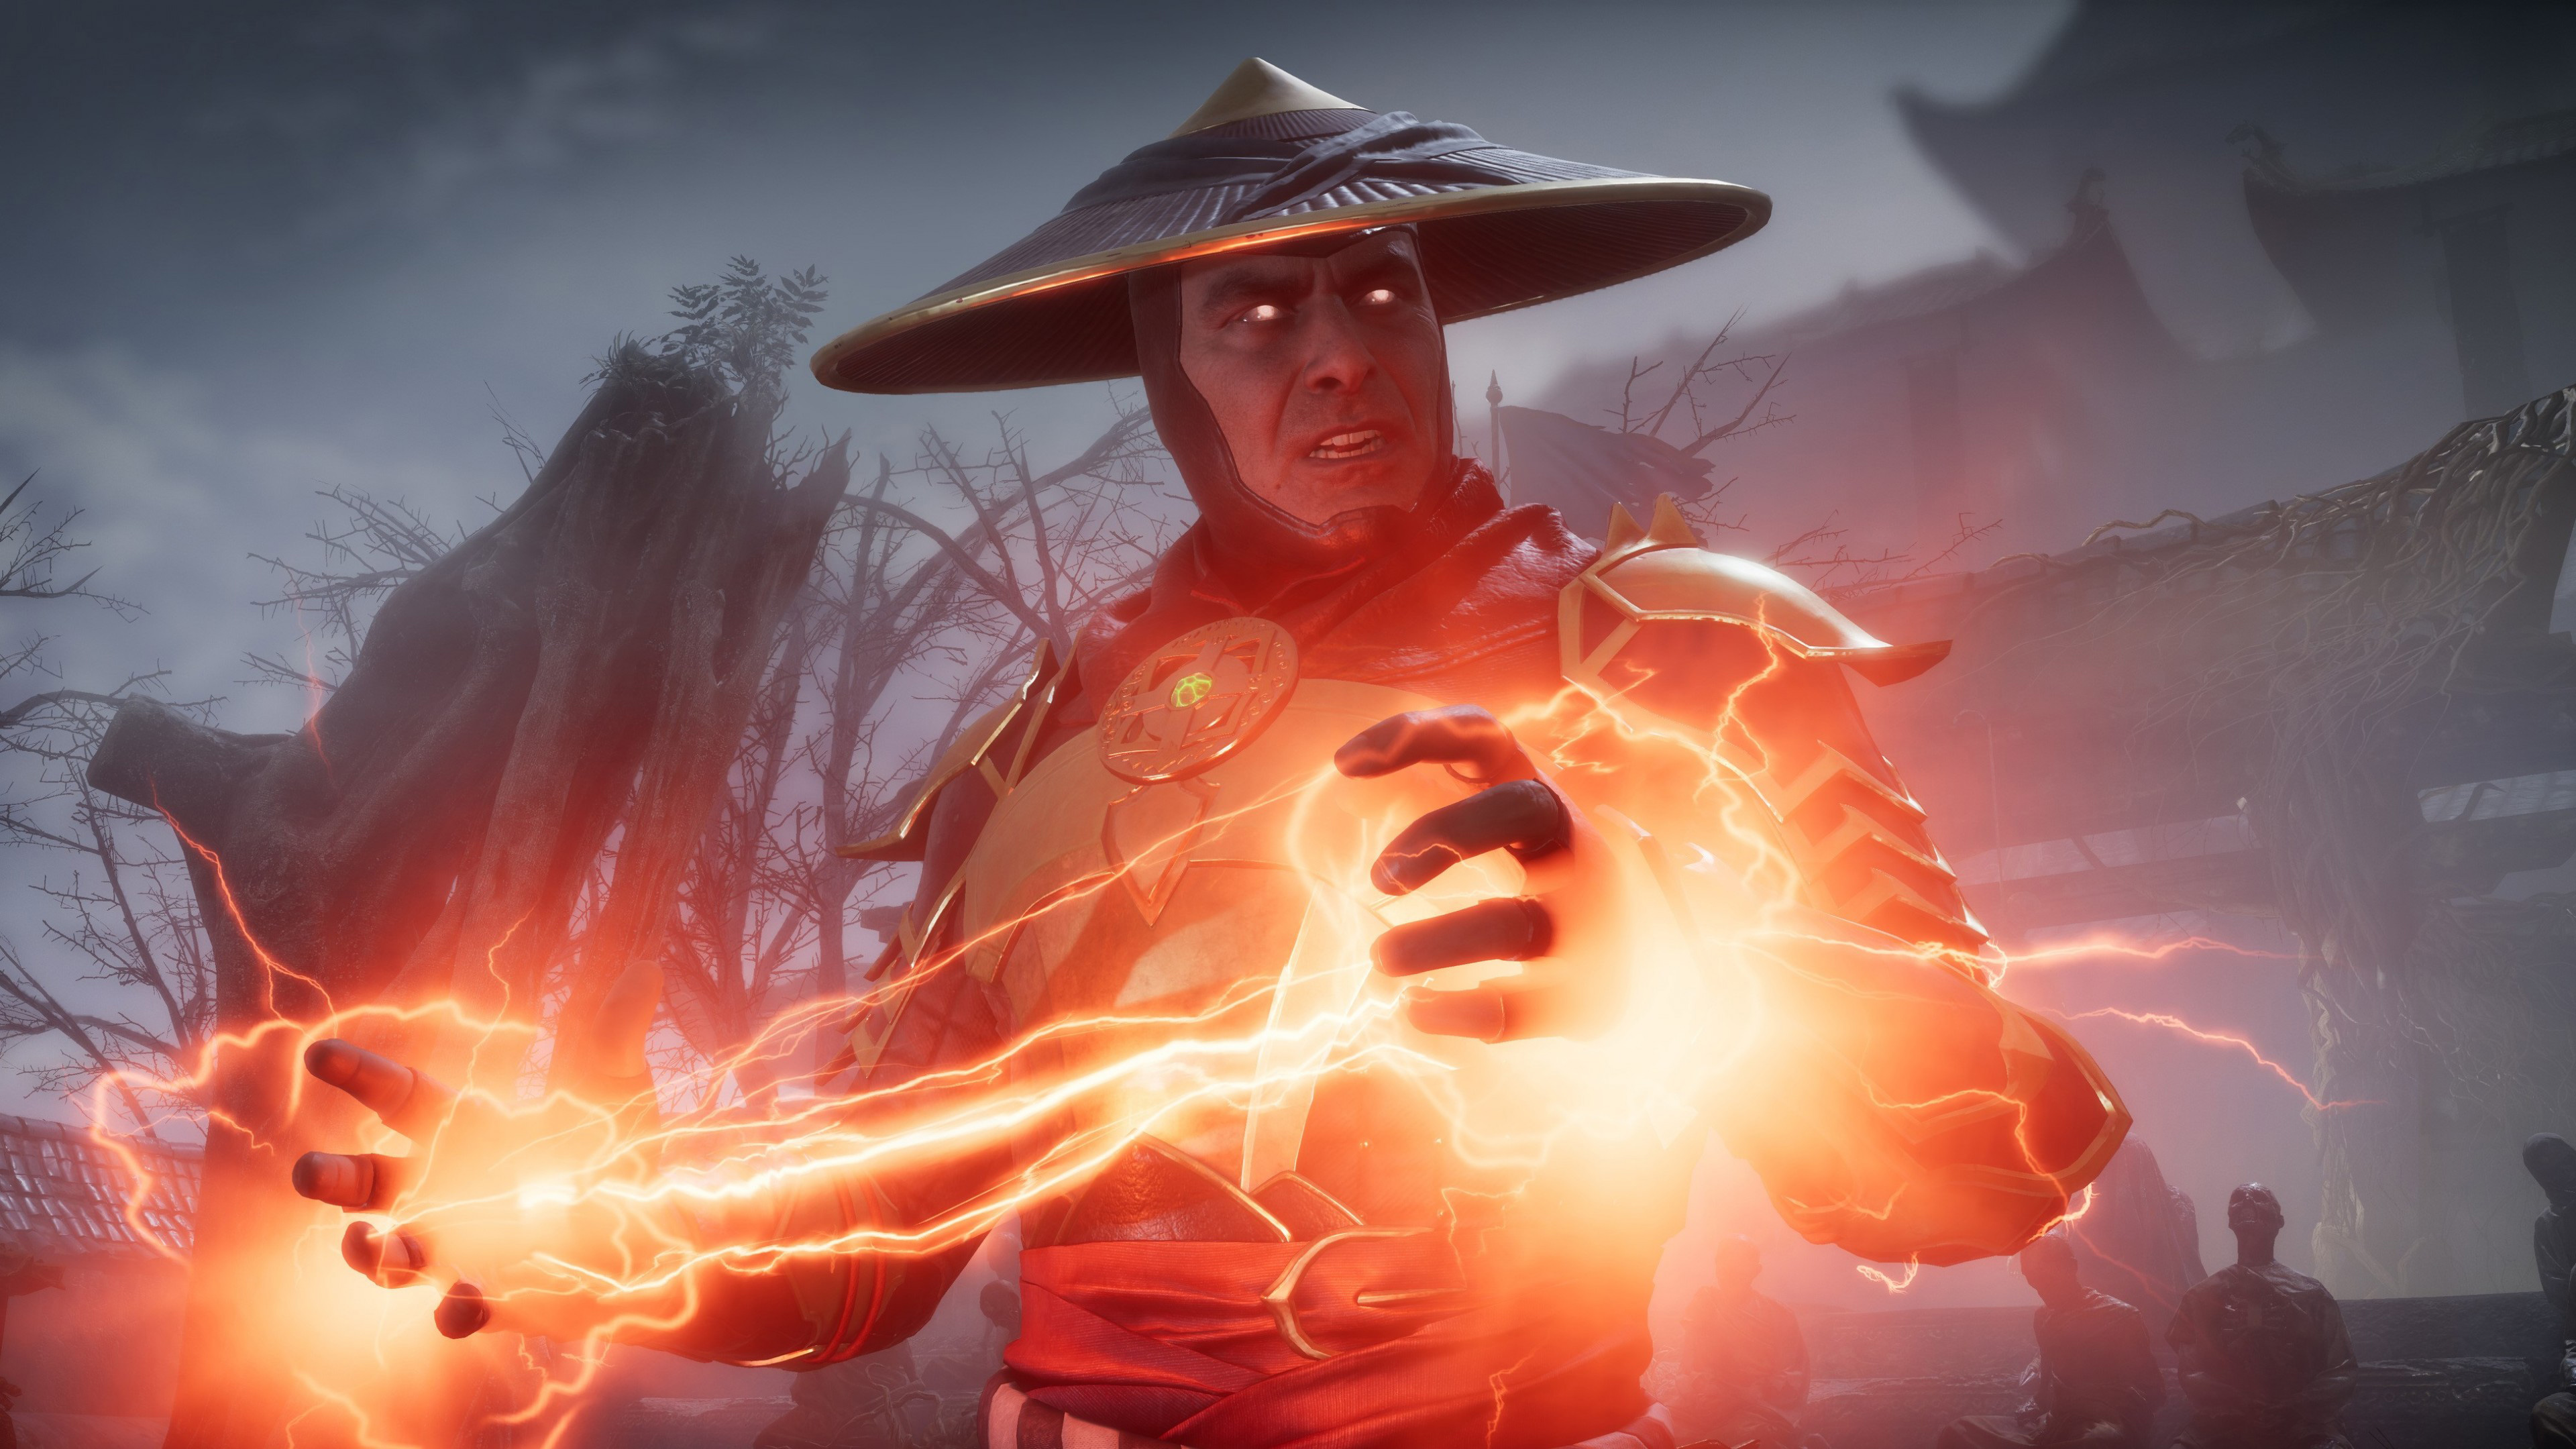 Mortal Kombat 11 Wallpapers In Ultra HD